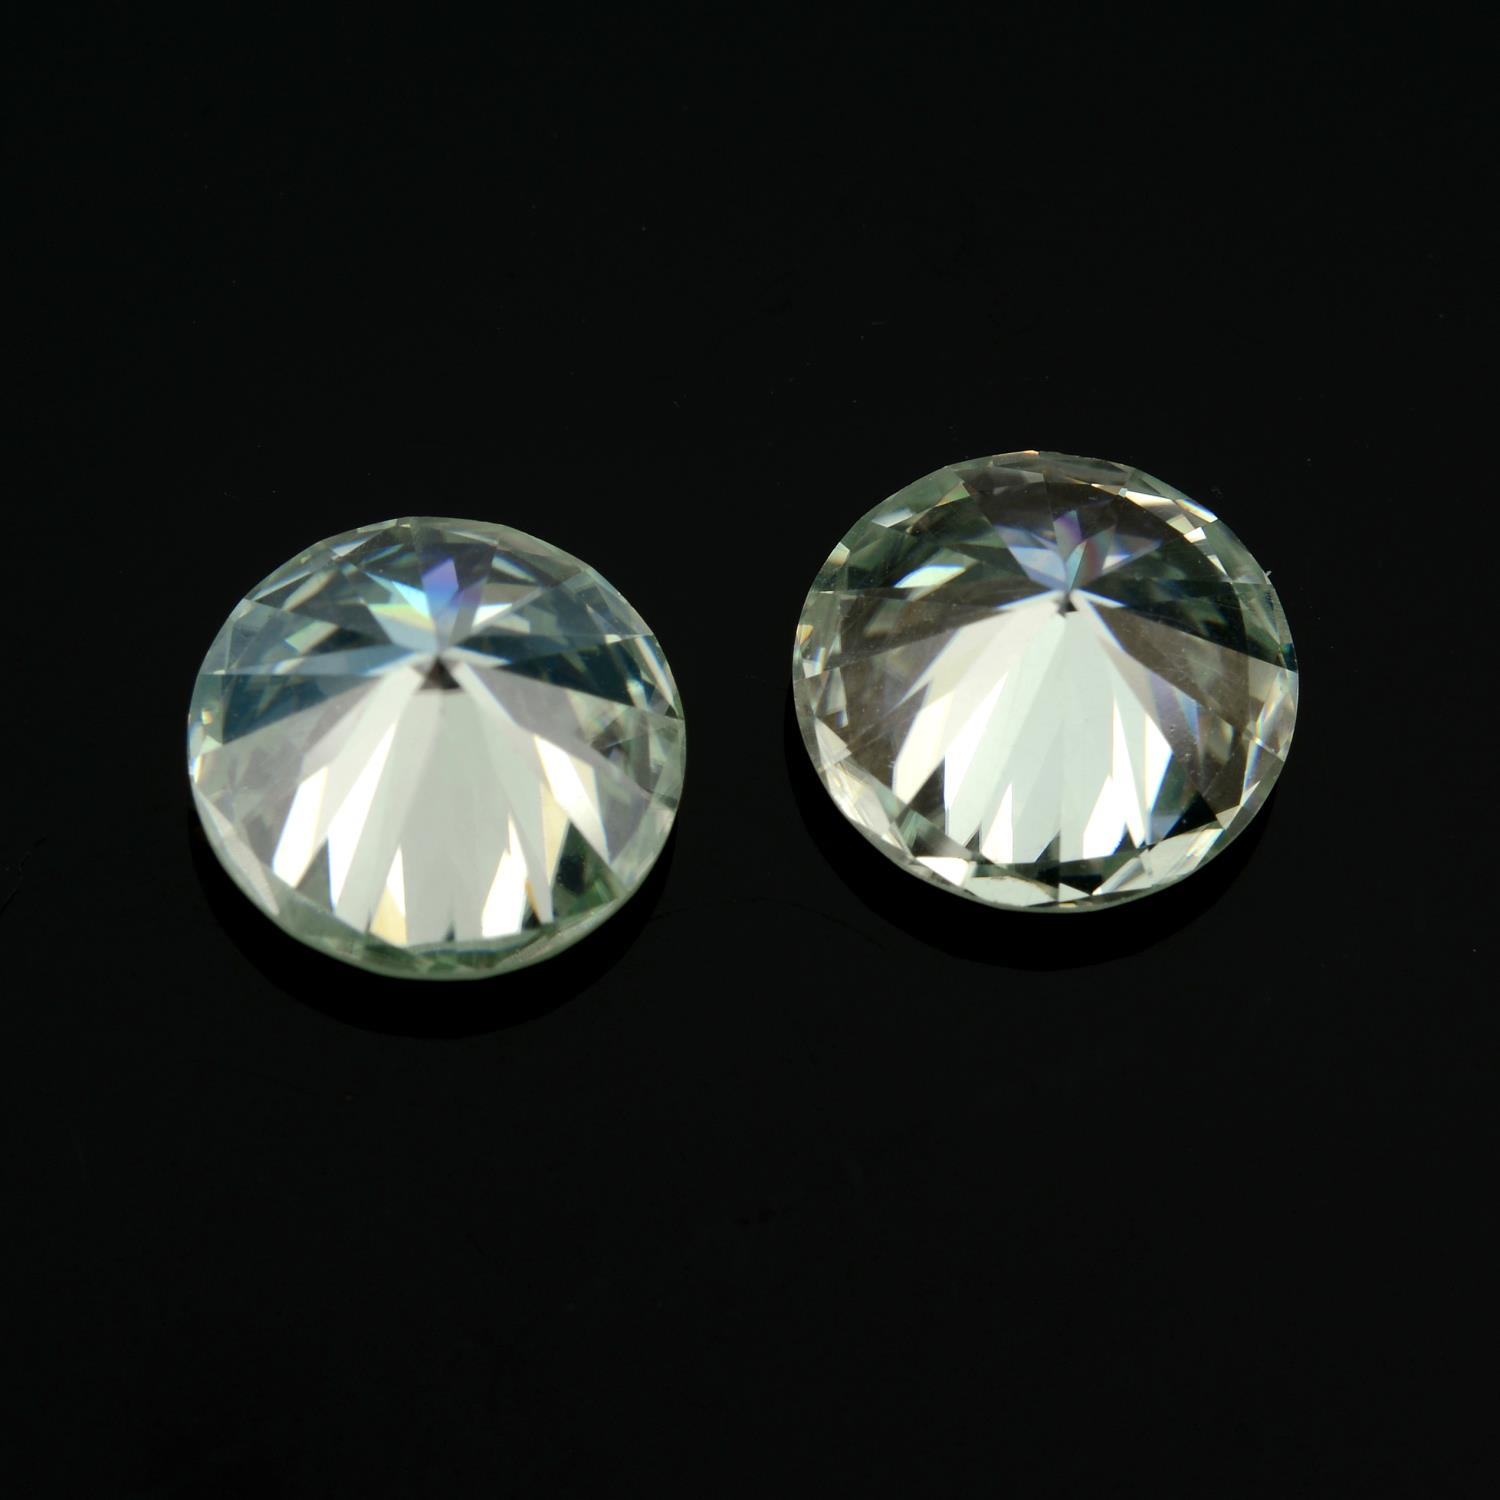 A pair of circular-shape colourless synthetic moissanite total weight 3.62cts. - Image 2 of 2